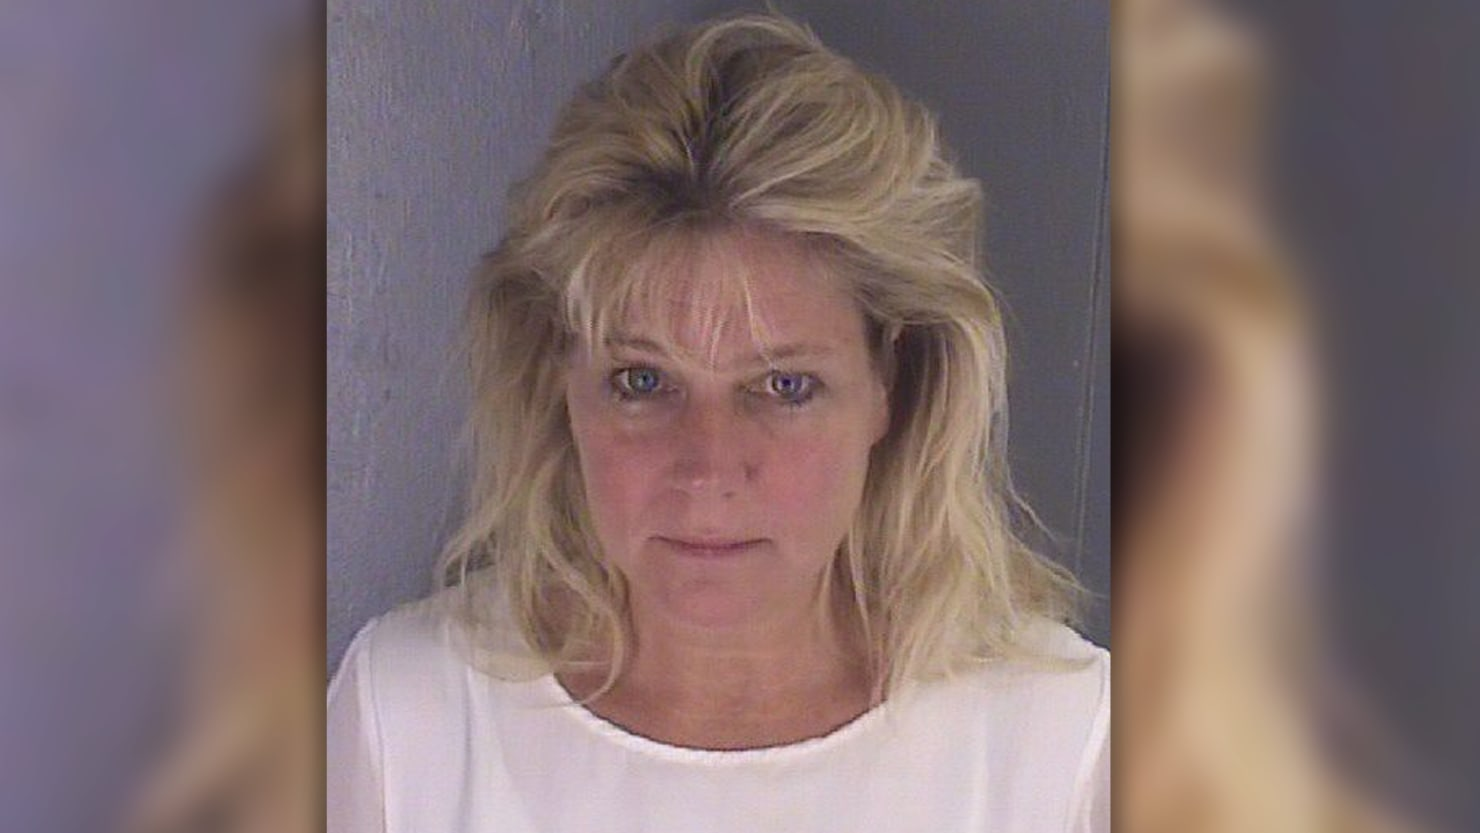 Teresa Jo Burchfield, wife of a lawyer in charge of overseeing ethics in President Trump's business trust was arrested outside a Virginia jail—with an inmate in her backseat.